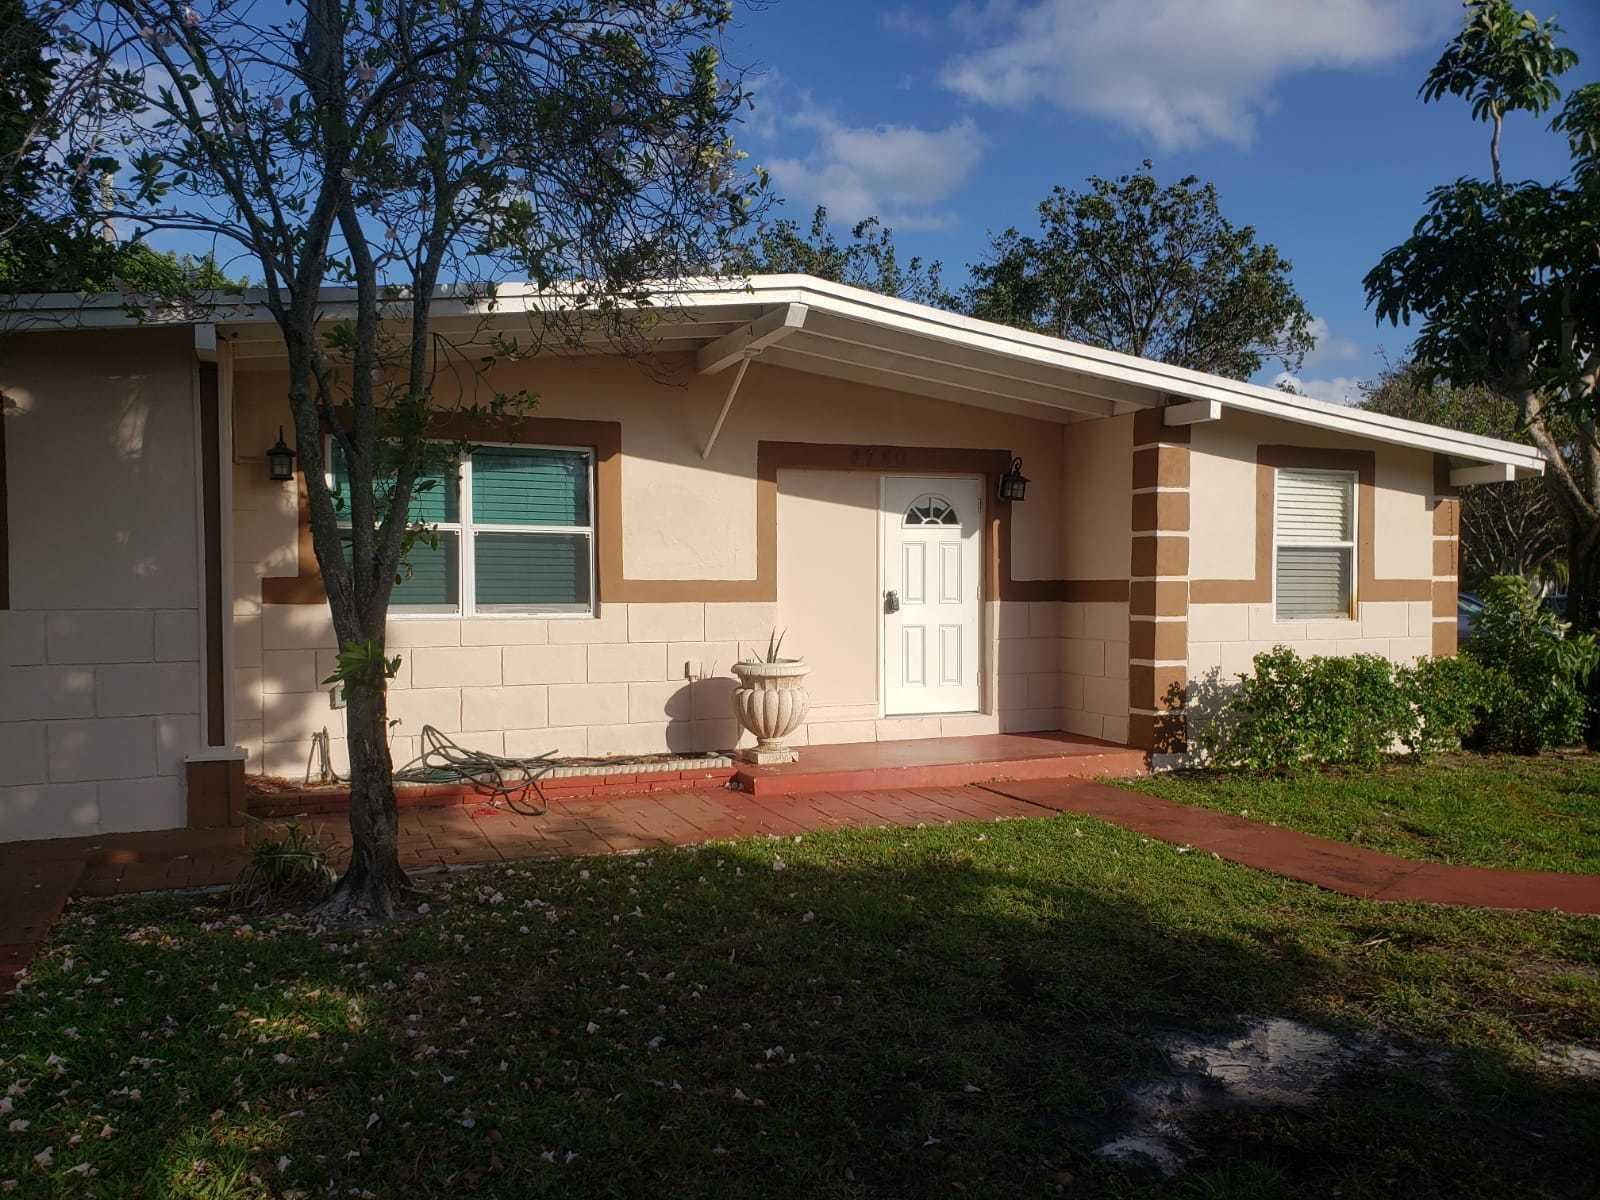 4780 NE 17th Avenue, Pompano Beach, FL 33064 - #: RX-10705342